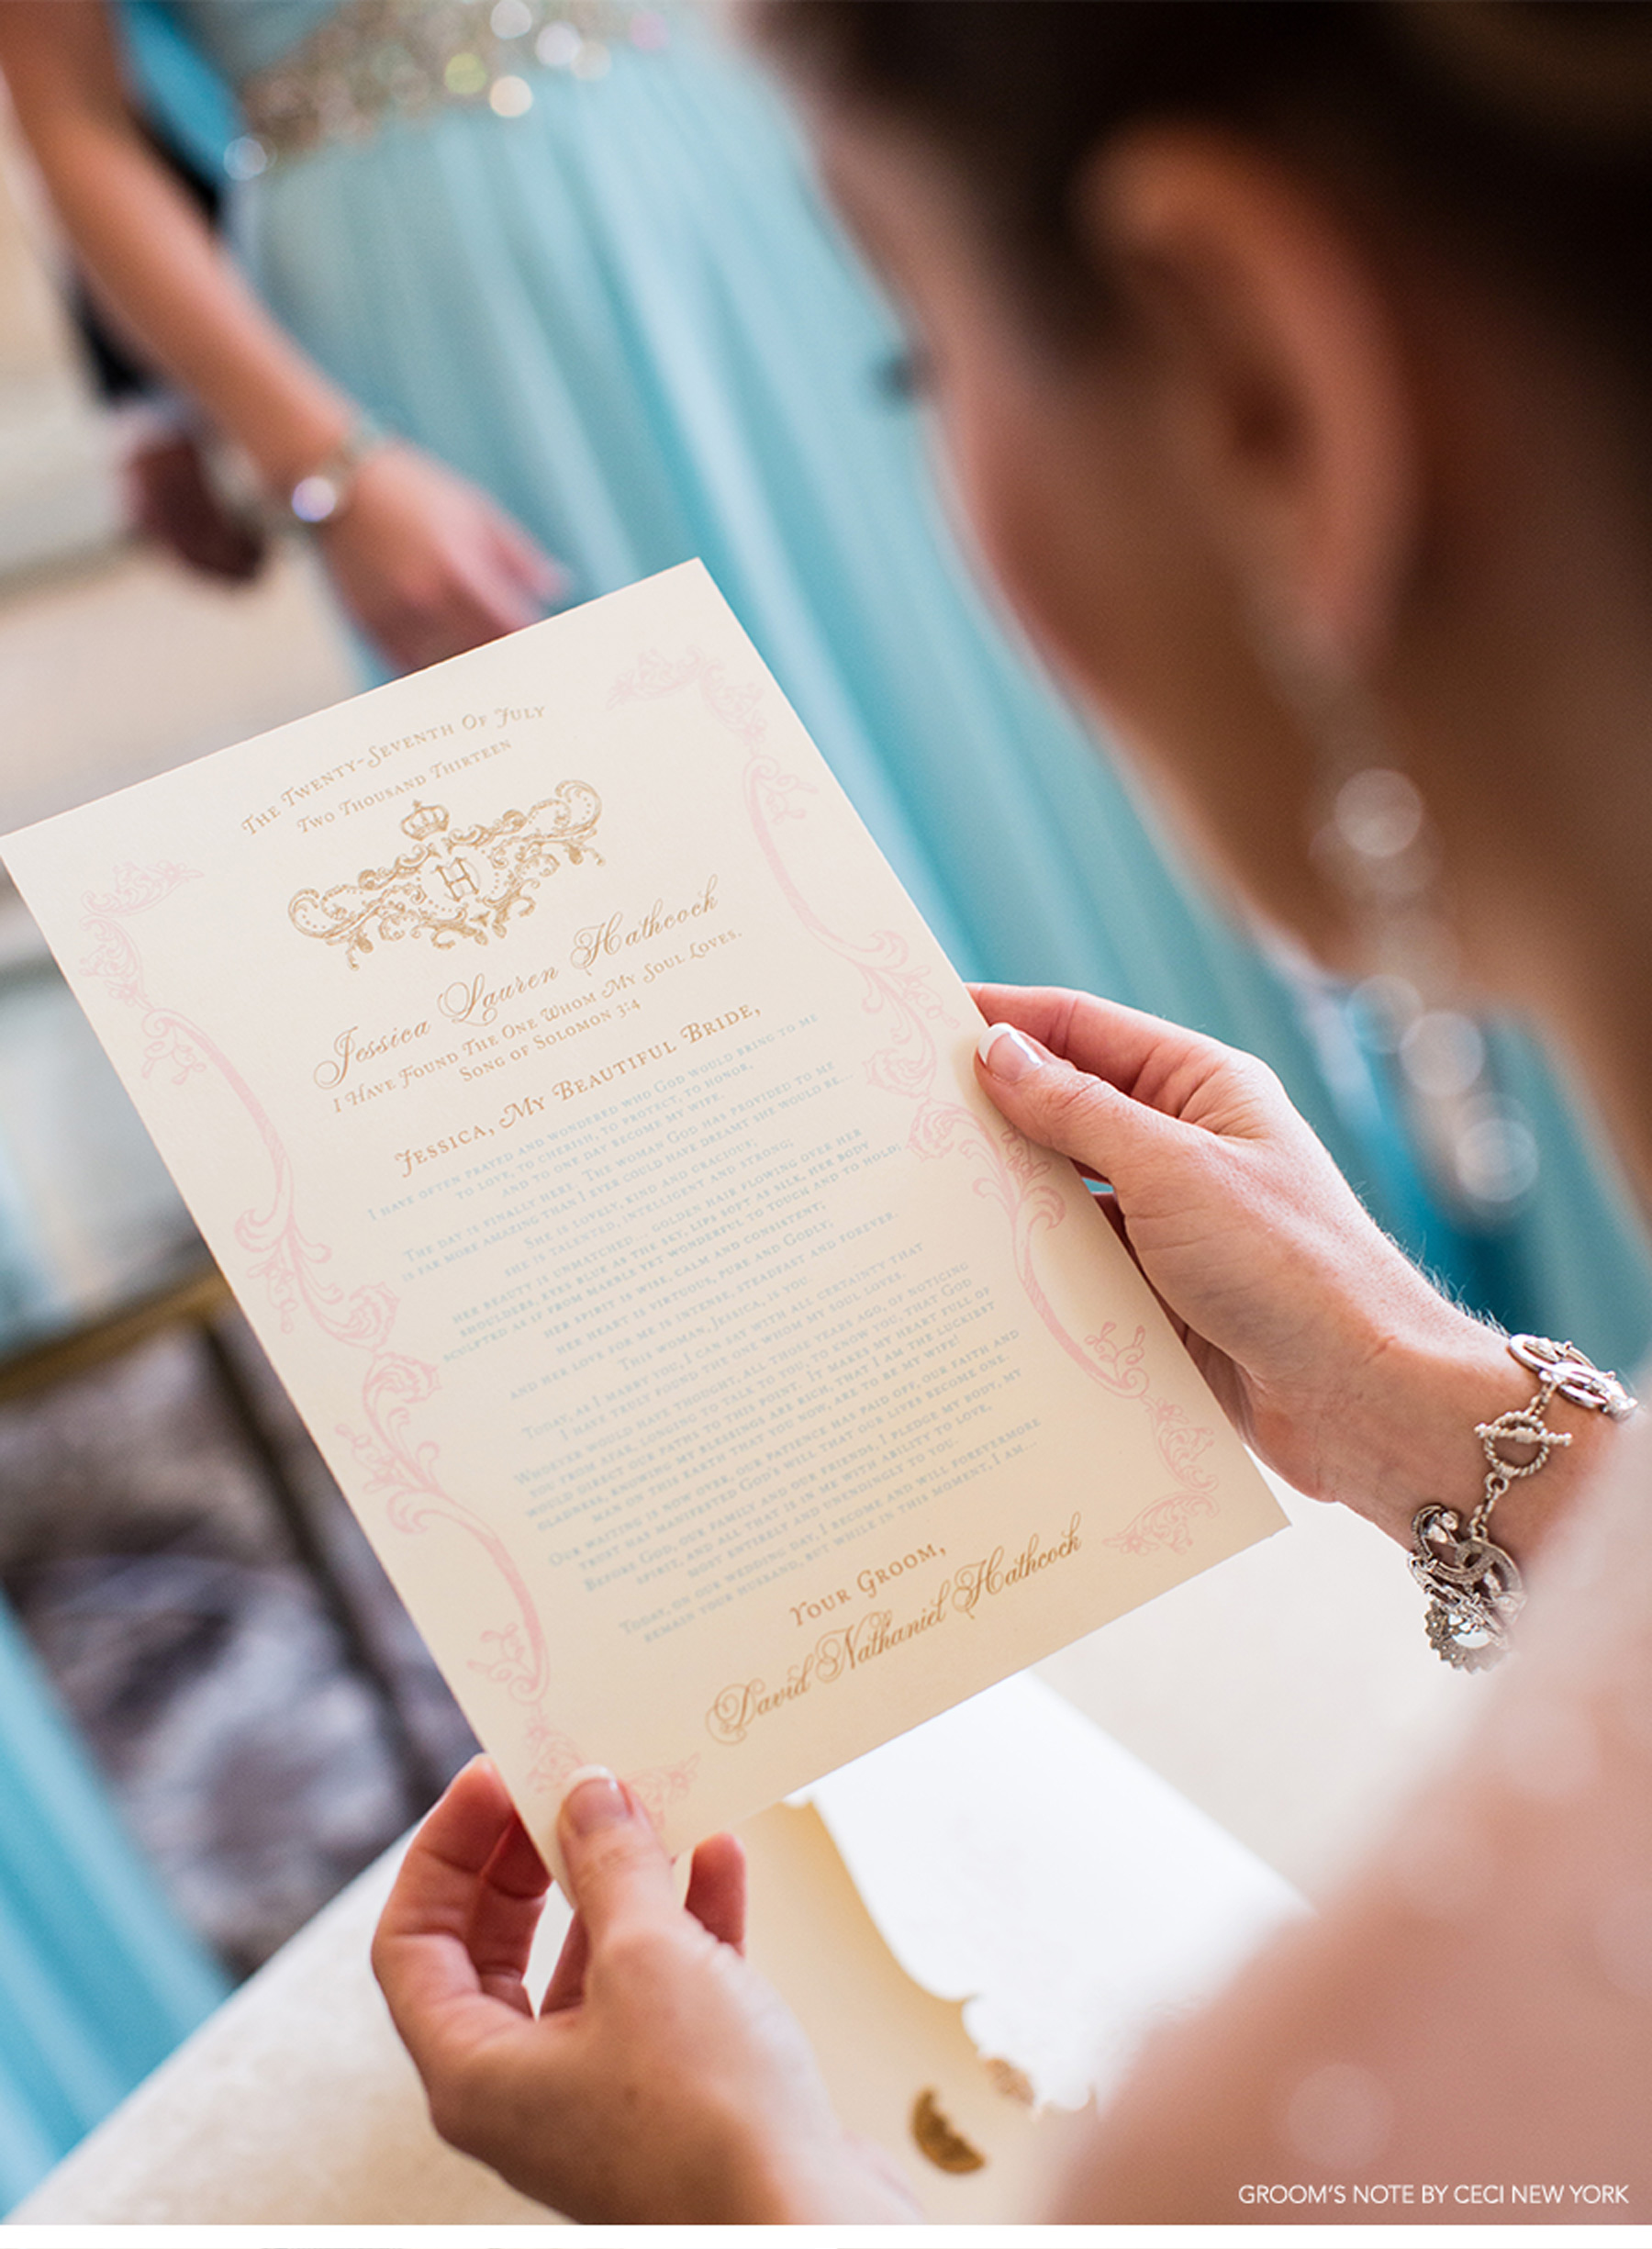 Our Muse - Regal French-Inspired Wedding - Be inspired by Jessica and David's regal wedding in shades of gold and sweet pastels - ceci new york, invitation, wedding invitation, luxury invitation, letterpress printing, foil stamping, die-cut, gold, pink, blue, bee, honeycomb, groom's note